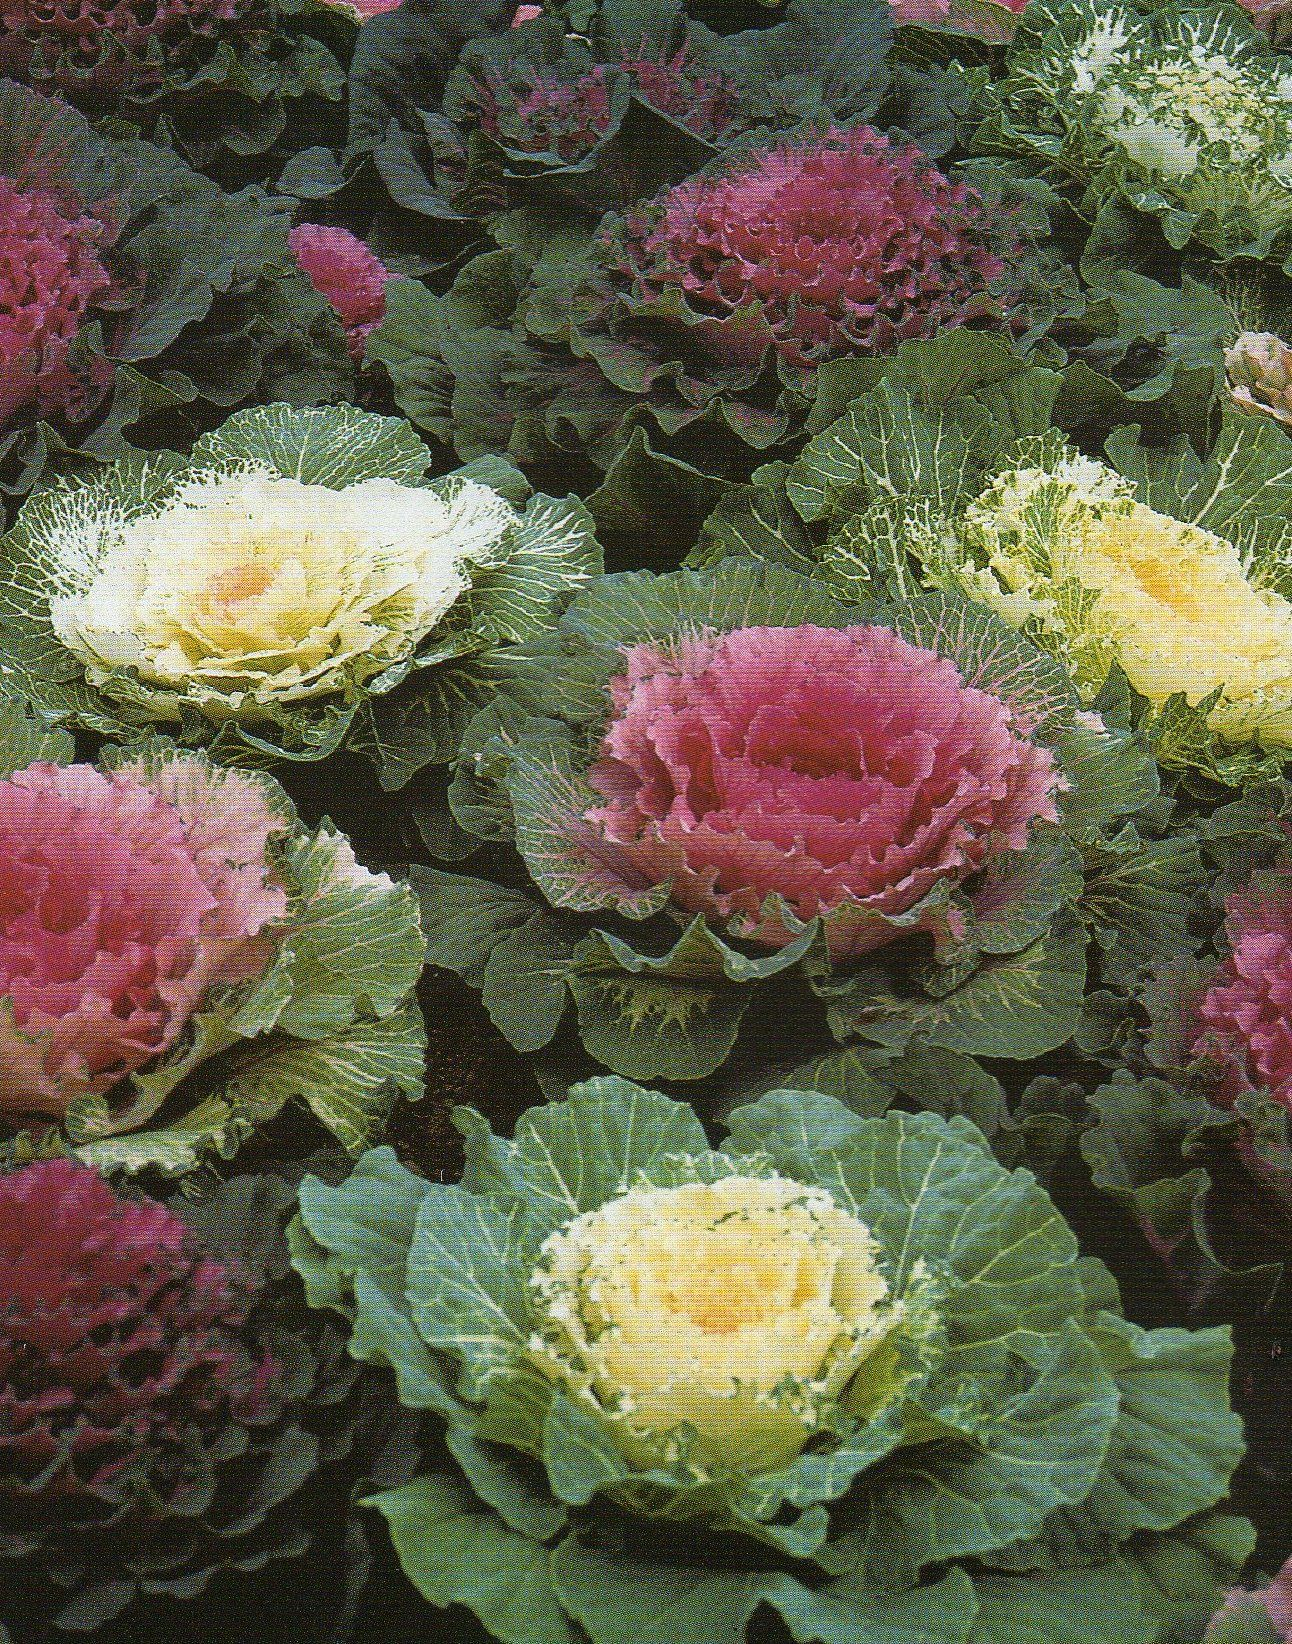 Image Detail For Growing And Eating Ornamental Kale Gardeners Tips Ornamental Kale Ornamental Cabbage Annual Bedding Plants